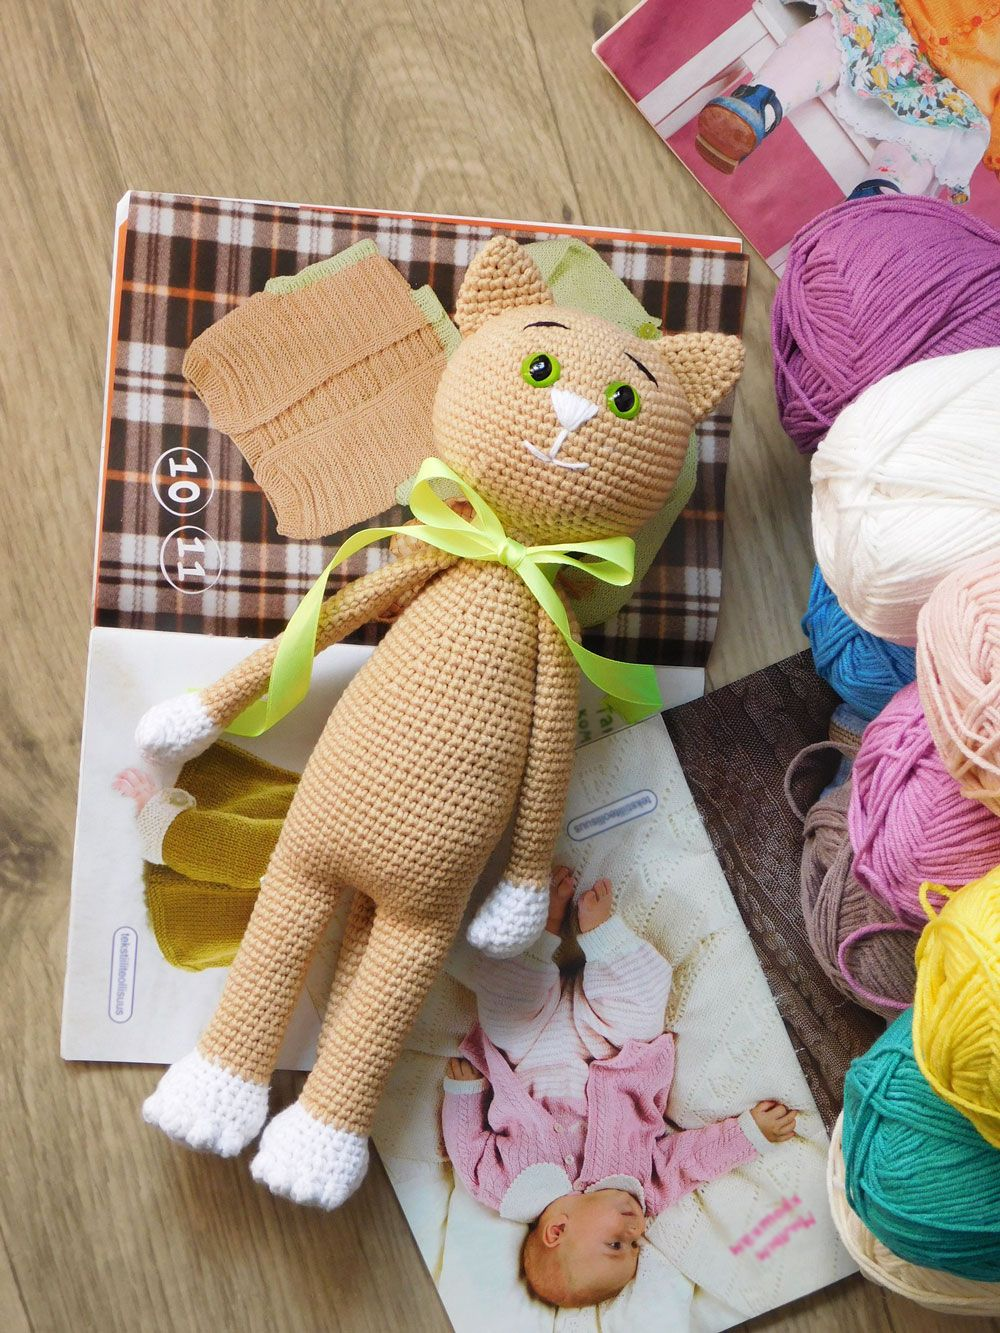 Crochet this cute cat free amigurumi patterns amigurumi today to create this crochet cat you need only basic skills the free crochet cat pattern is very simple the body and legs are crocheted as one part bankloansurffo Image collections